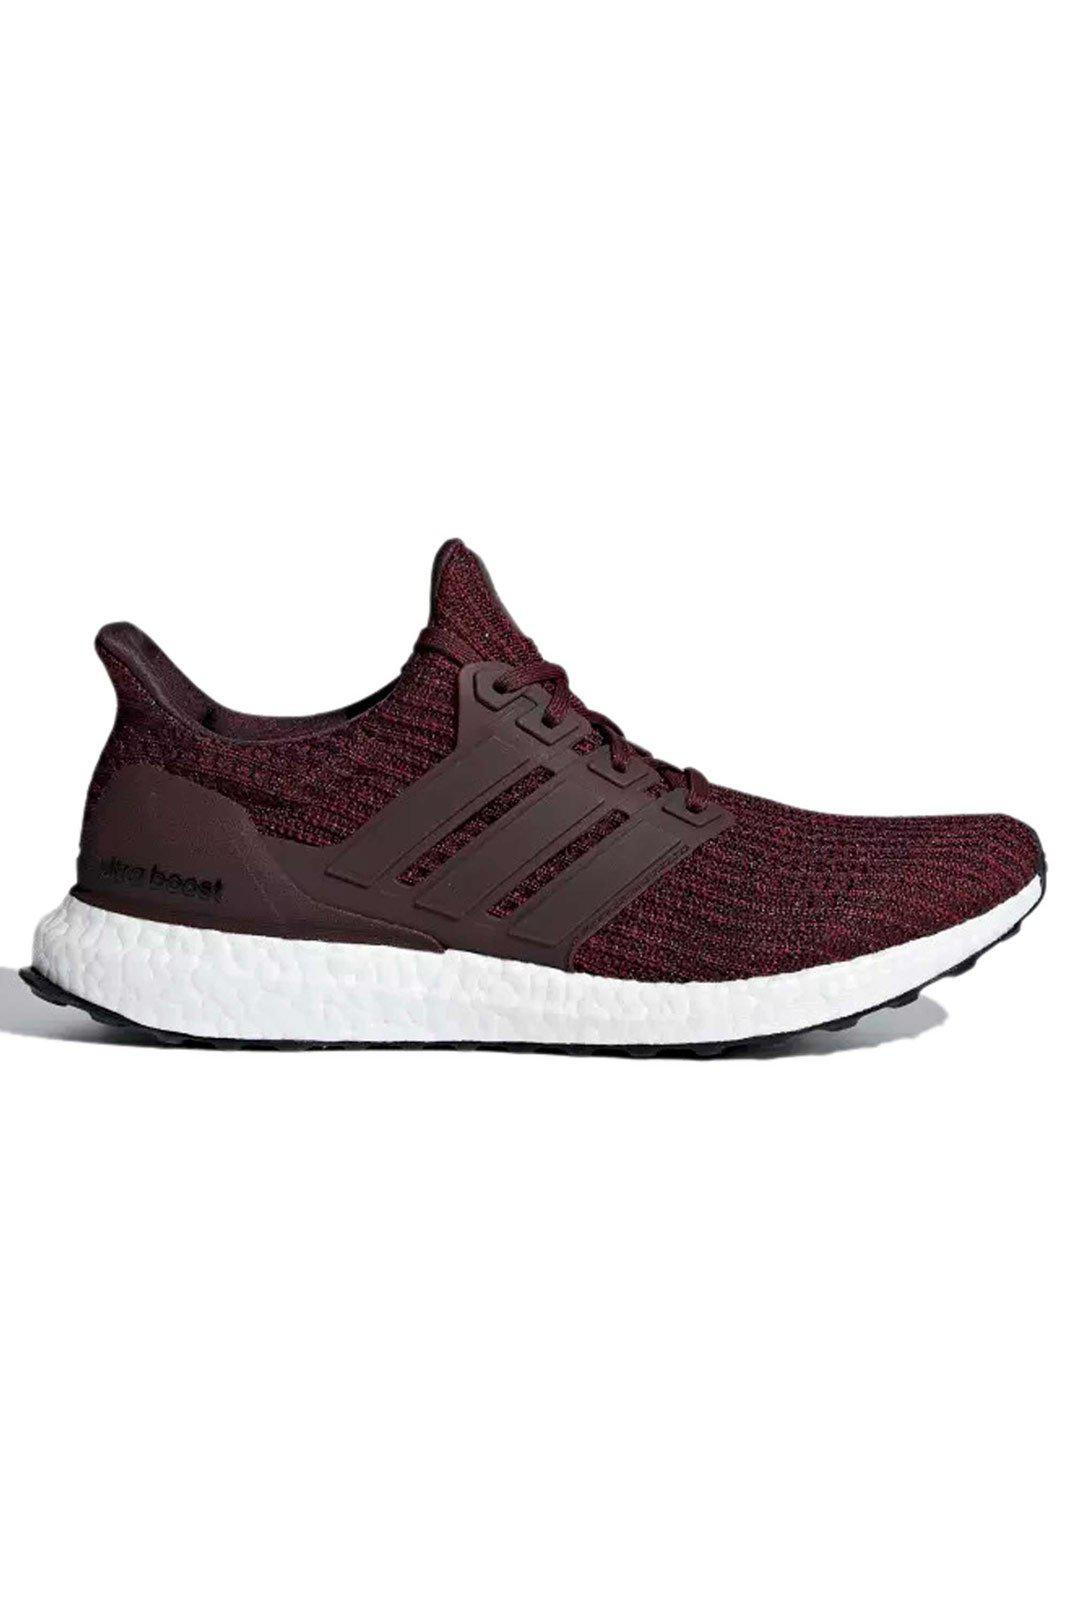 b4ba768989d Lyst - adidas Ultraboost Shoes for Men